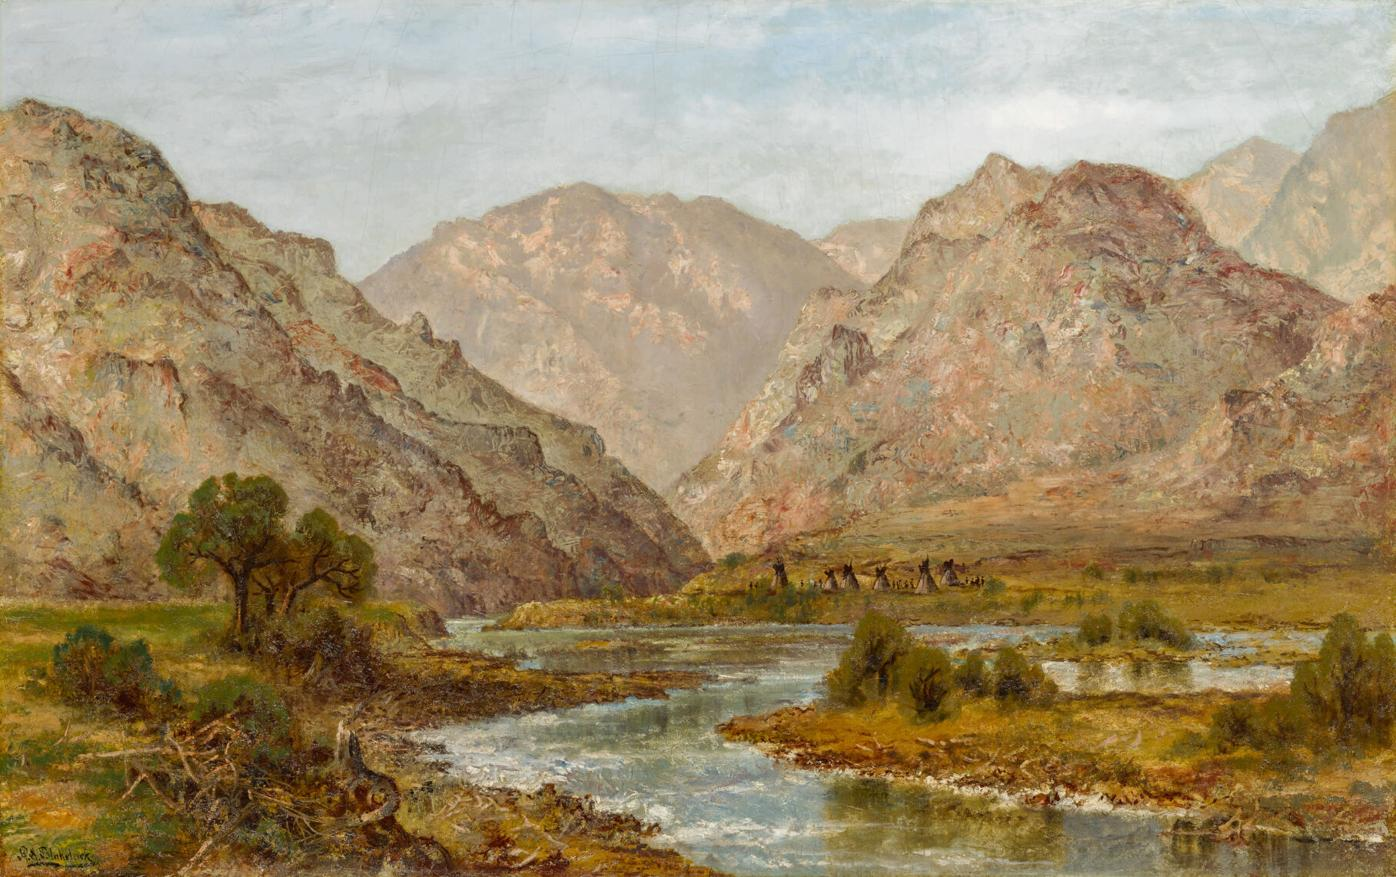 Planned sale of Berkshire Museum artworks echoes past history